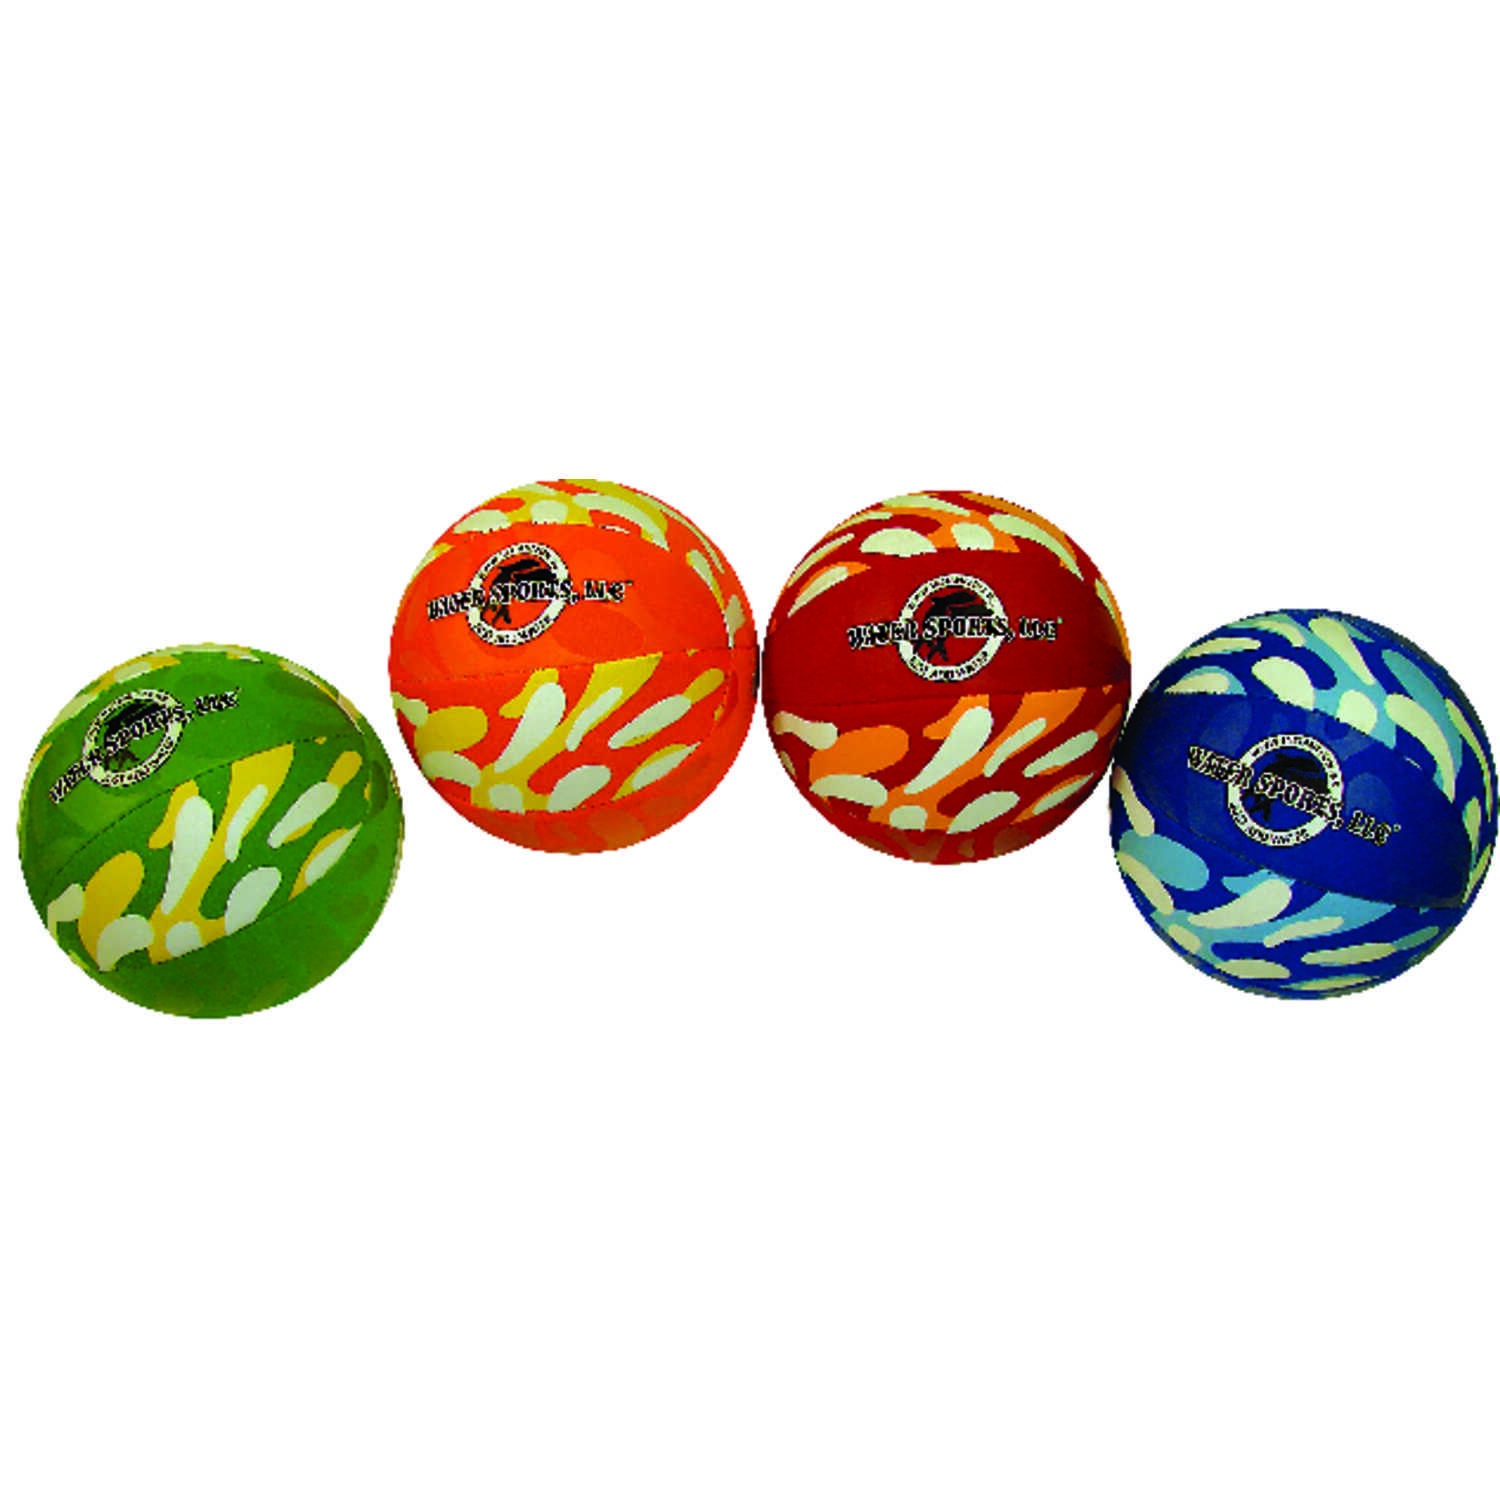 Water Sports  Thermoplastic  Inflatable Multicolored  Football  6 in. H x 6 in. W x 6 in. L